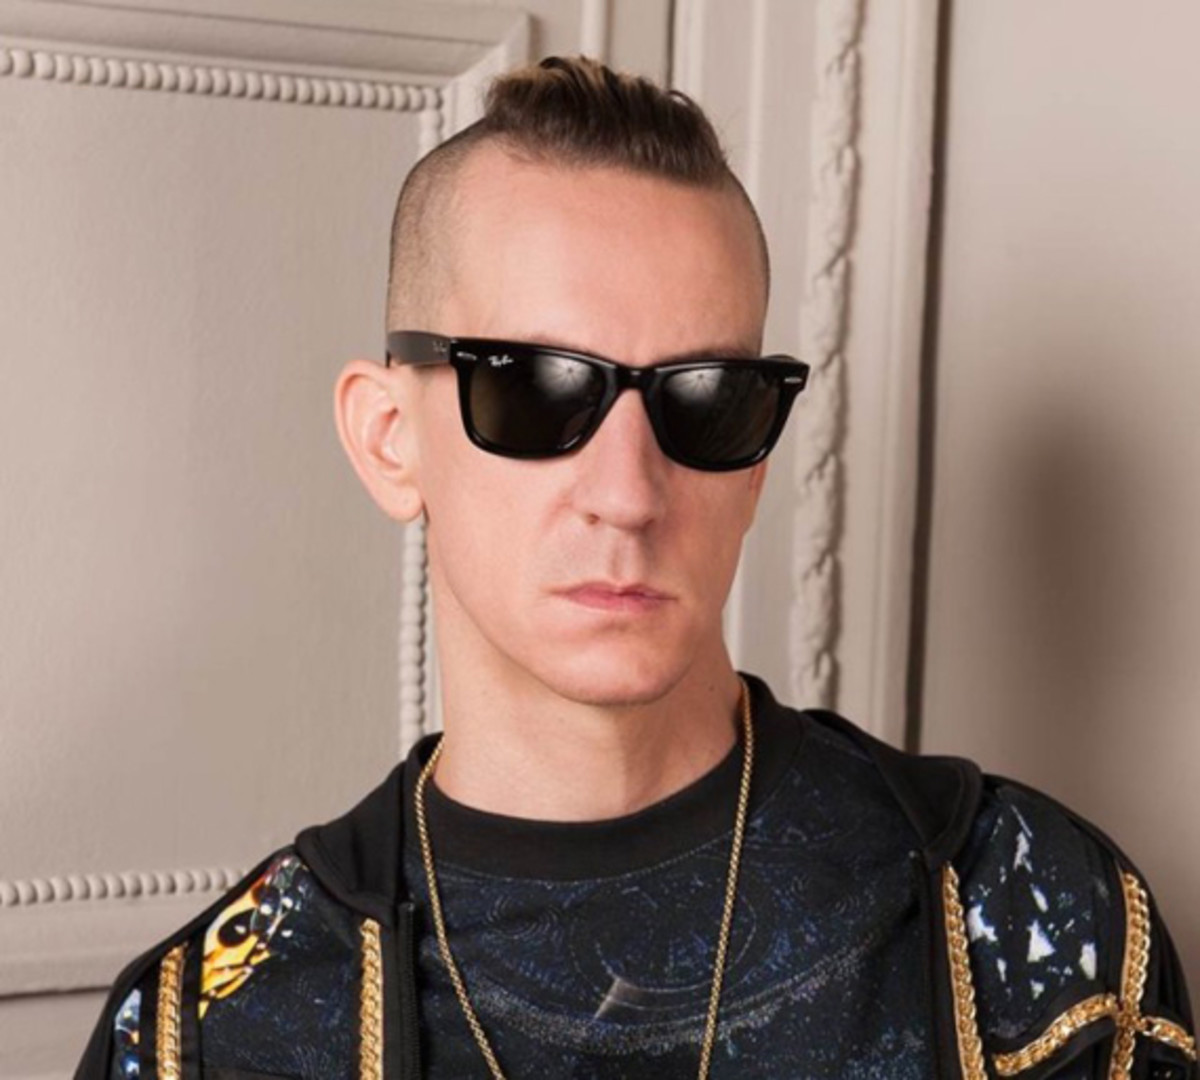 jeremy-scott-named-creative-director-at-moschino-01